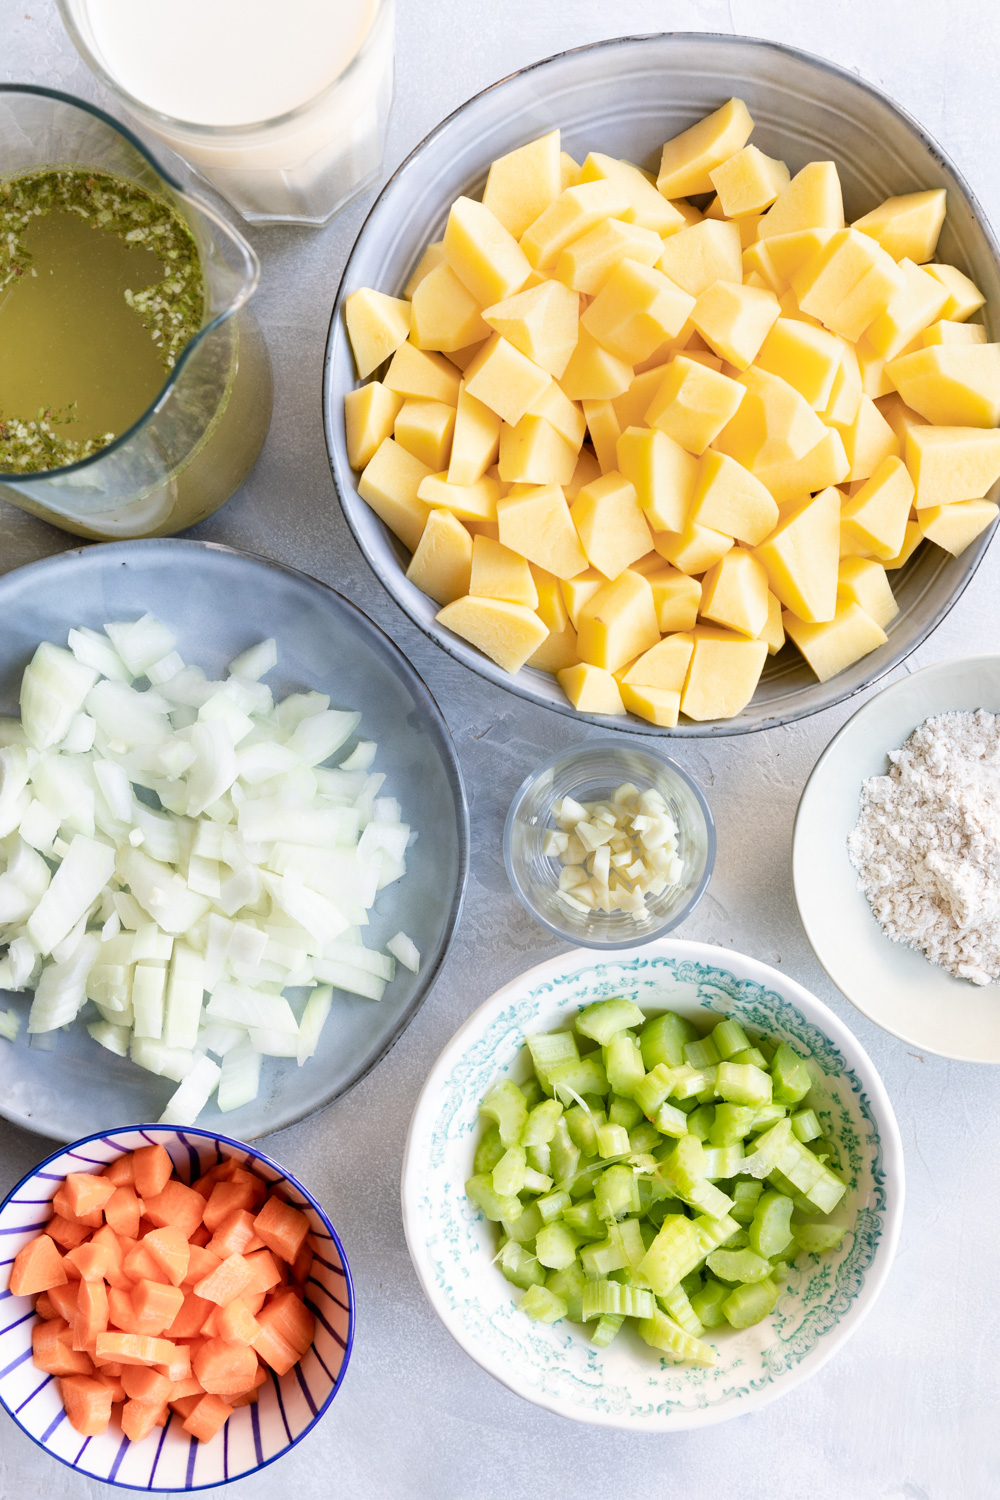 photo of ingredients for potato soup in bowls